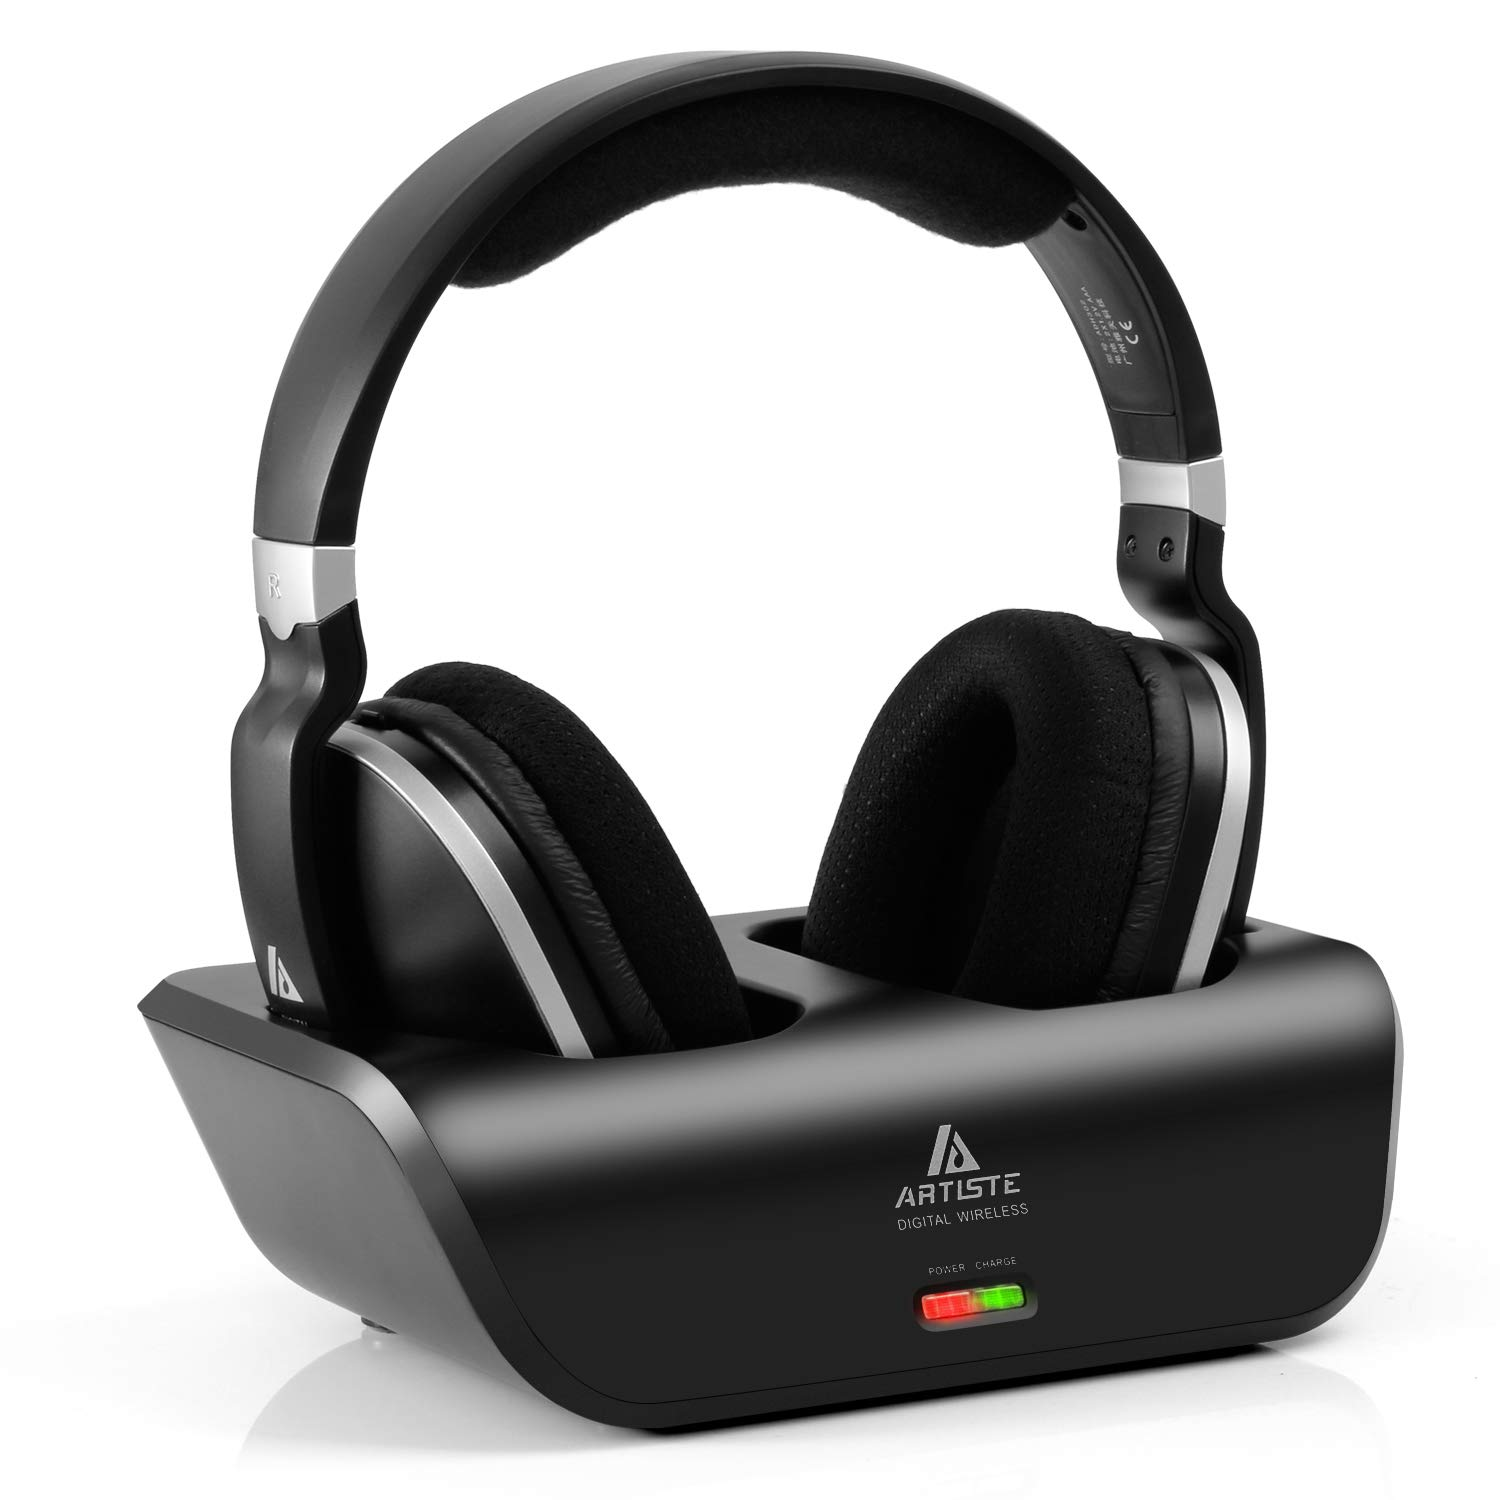 ARTISTE Wireless TV Headphones Over Ear Headsets - Digital Stereo Headsets with 2.4GHz RF Transmitter, Charging Dock, 100ft Wireless Range and Rechargeable 20 Hour Battery, Black by ARTISTE